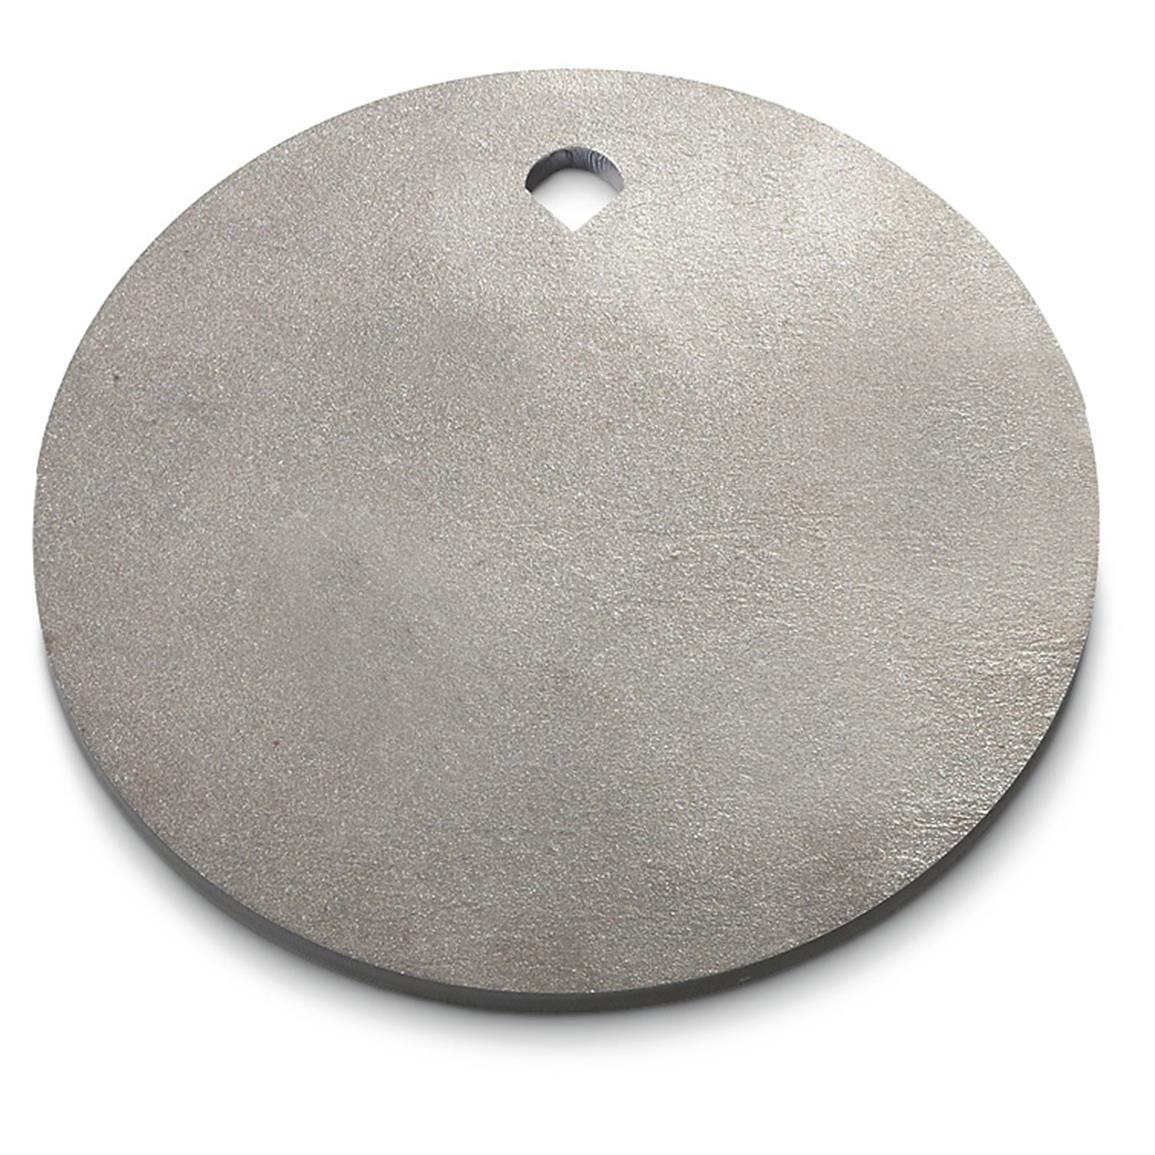 Ar500 Hardened Steel Plate Round Shooting Target 12 Diam 3 8 644561 Shooting Targets At Sportsman S Guide Shooting Targets Steel Plate Hardened Steel